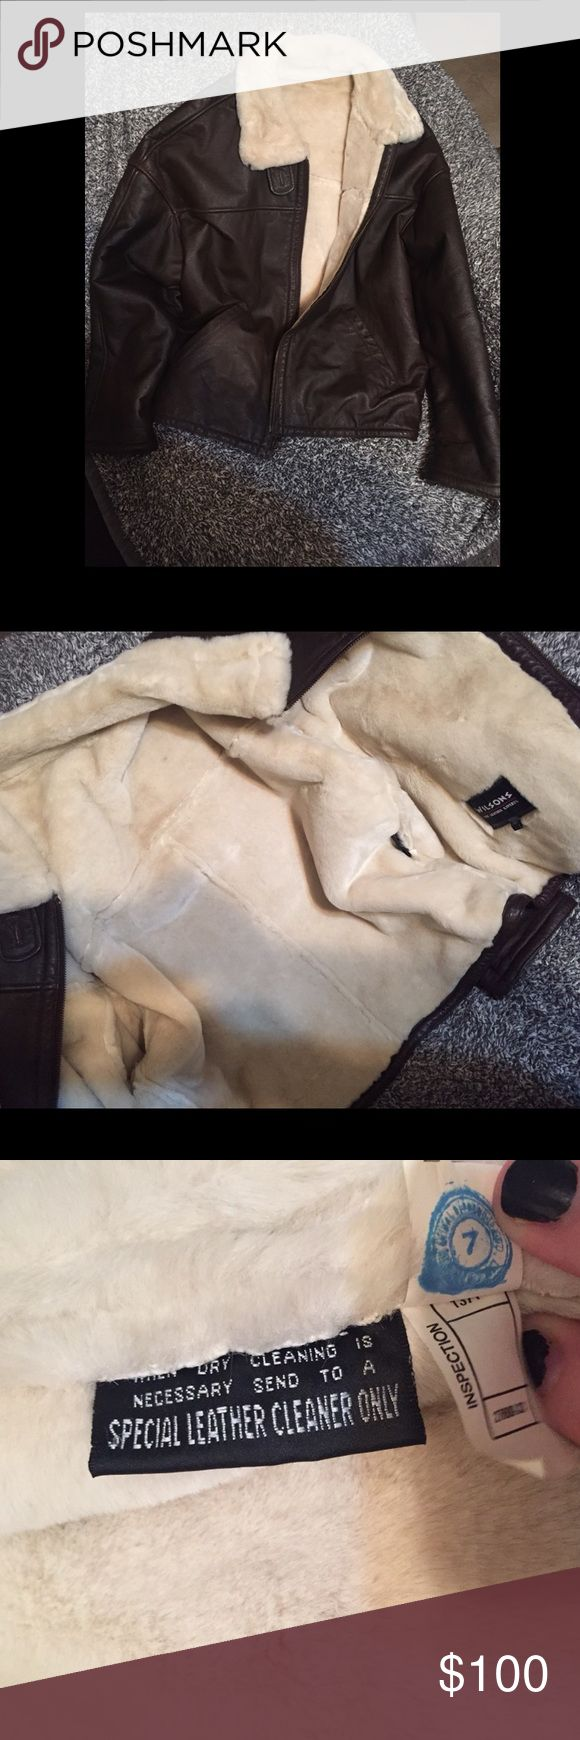 wilsons leather fur lined coat Beautiful chocolate leather coat with super soft fur lining. My husband possibly wore it once. In like new condition, is a dry clean only item. Please note that this item will require me to pay more to ship so my price is pretty firm. Wilsons Leather Jackets & Coats